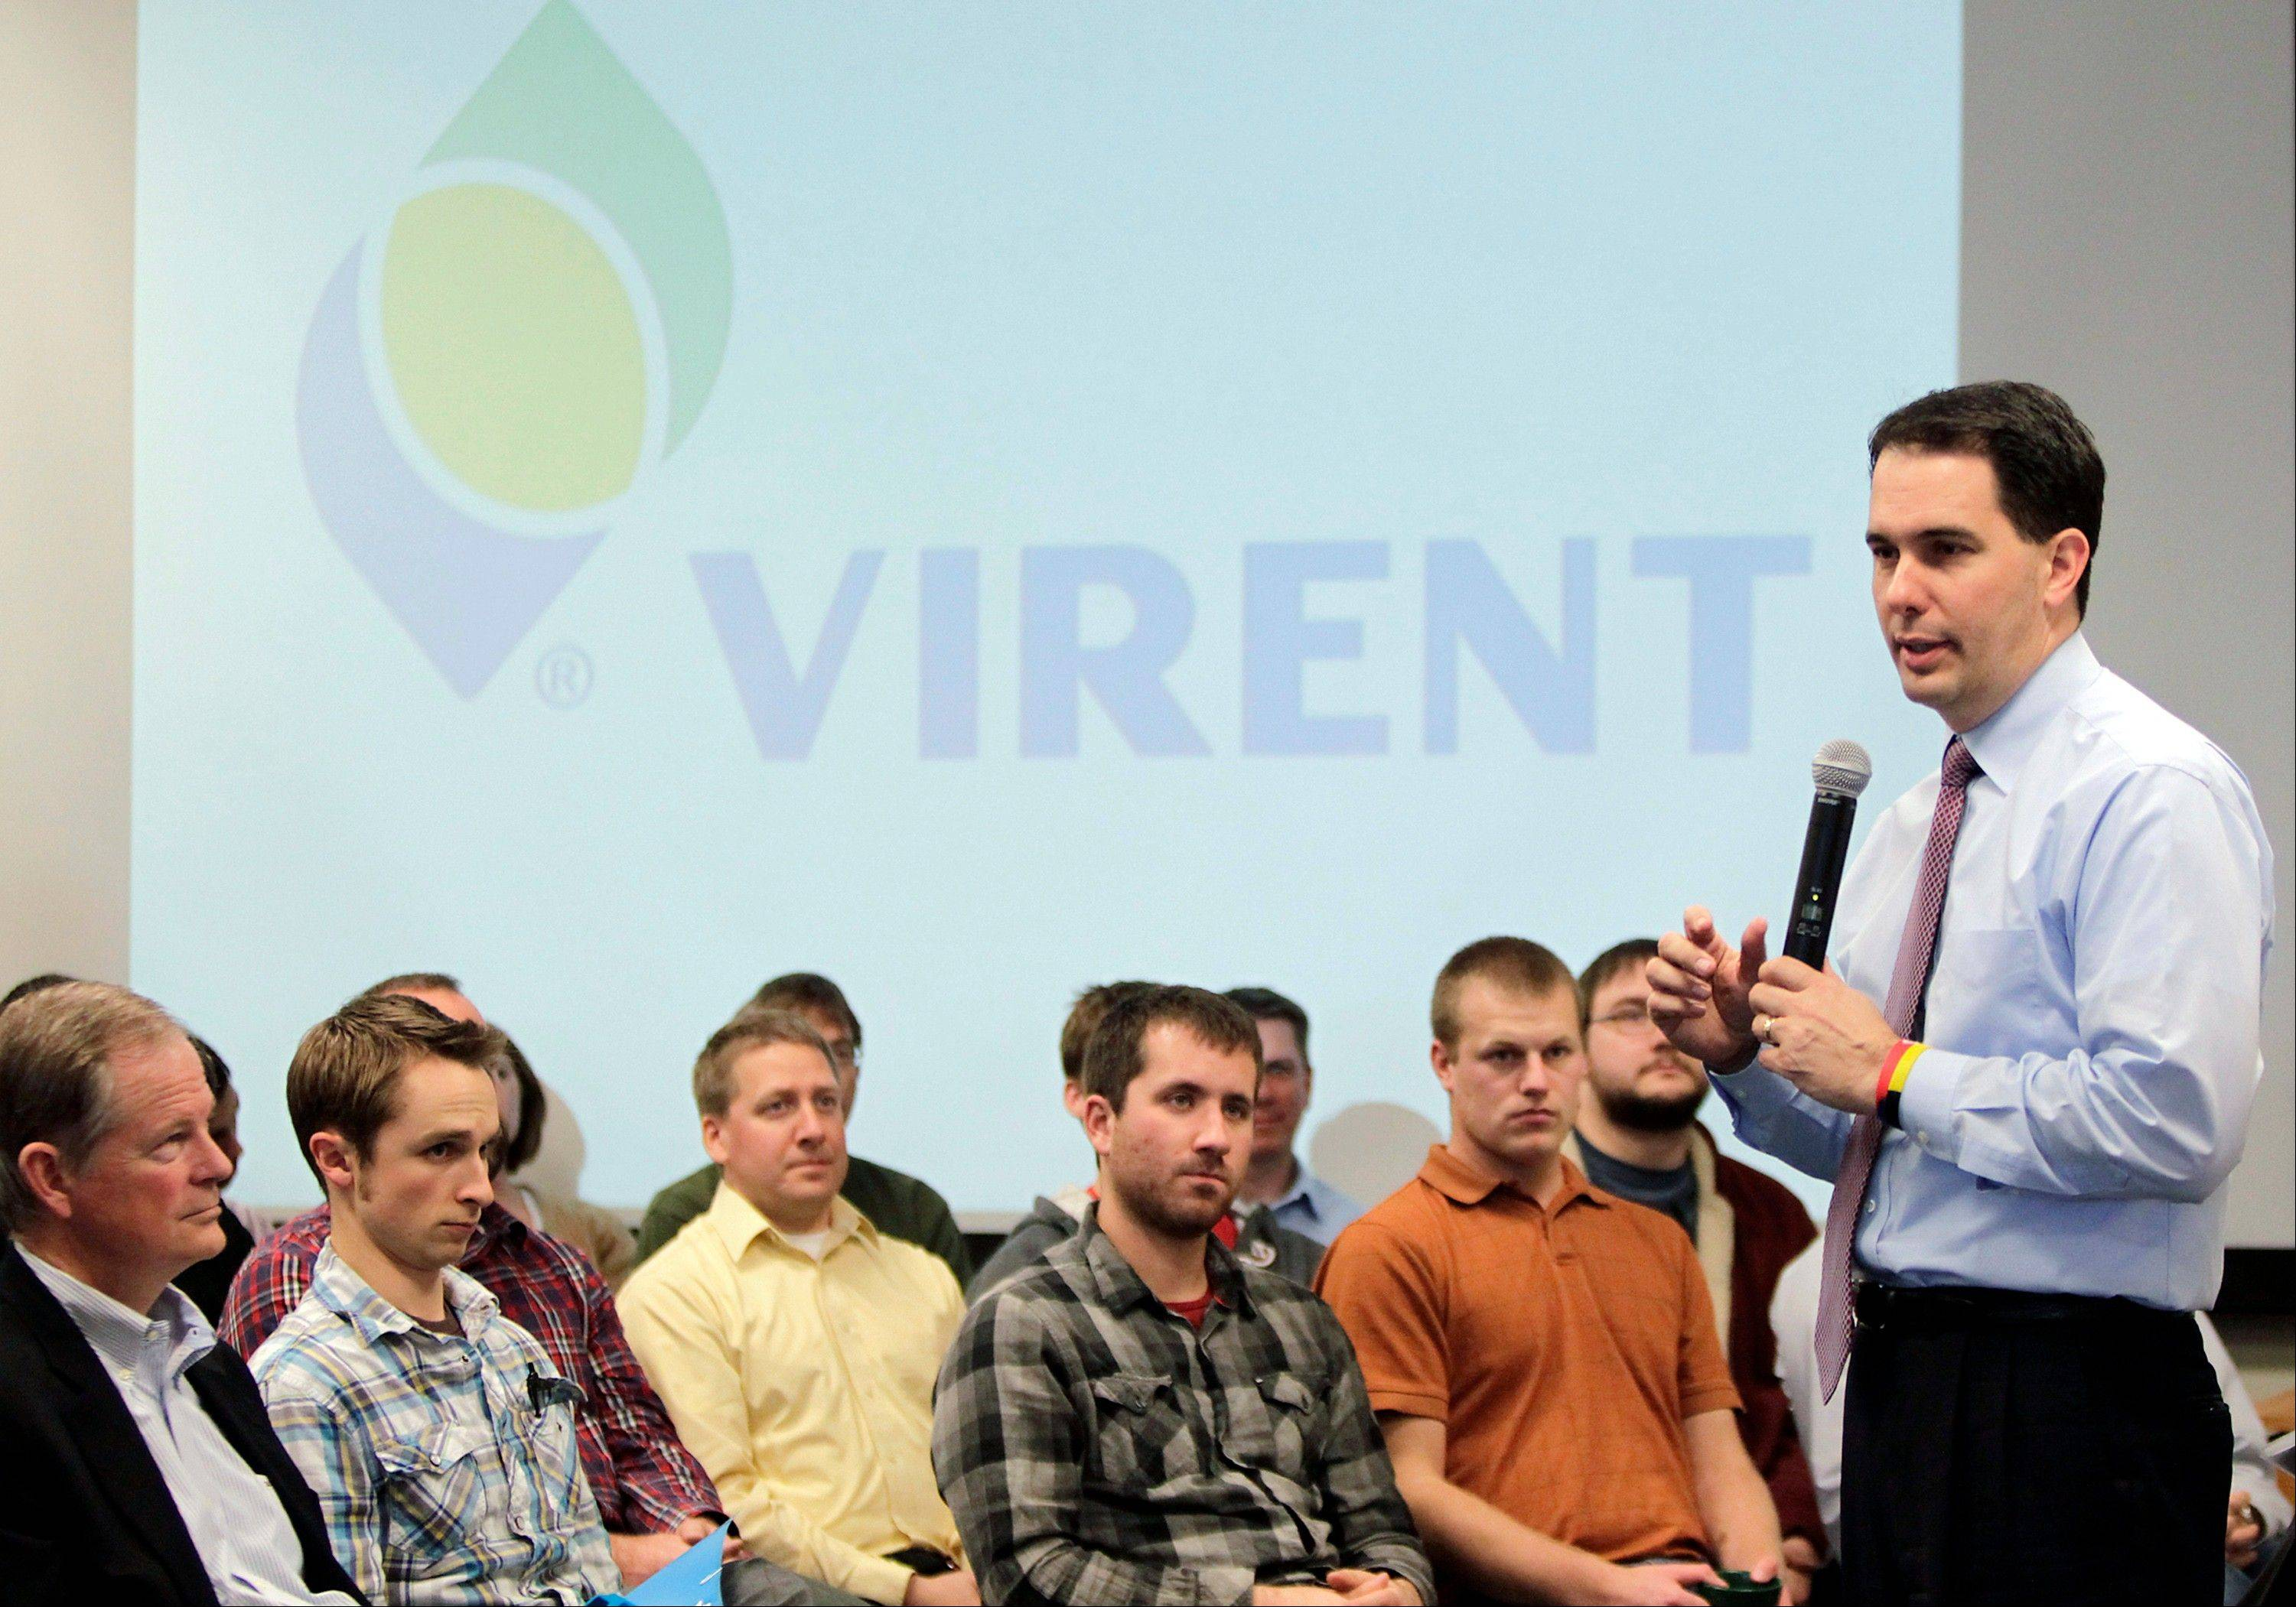 Wisconsin Gov. Scott Walker talks Virent workers at a Talk With Walker event in Madison, Wis. Walker became a conservative darling when, as a new Republican governor, he waged a high-profile battle to break the power of public employee unions in his traditionally pro-labor state.